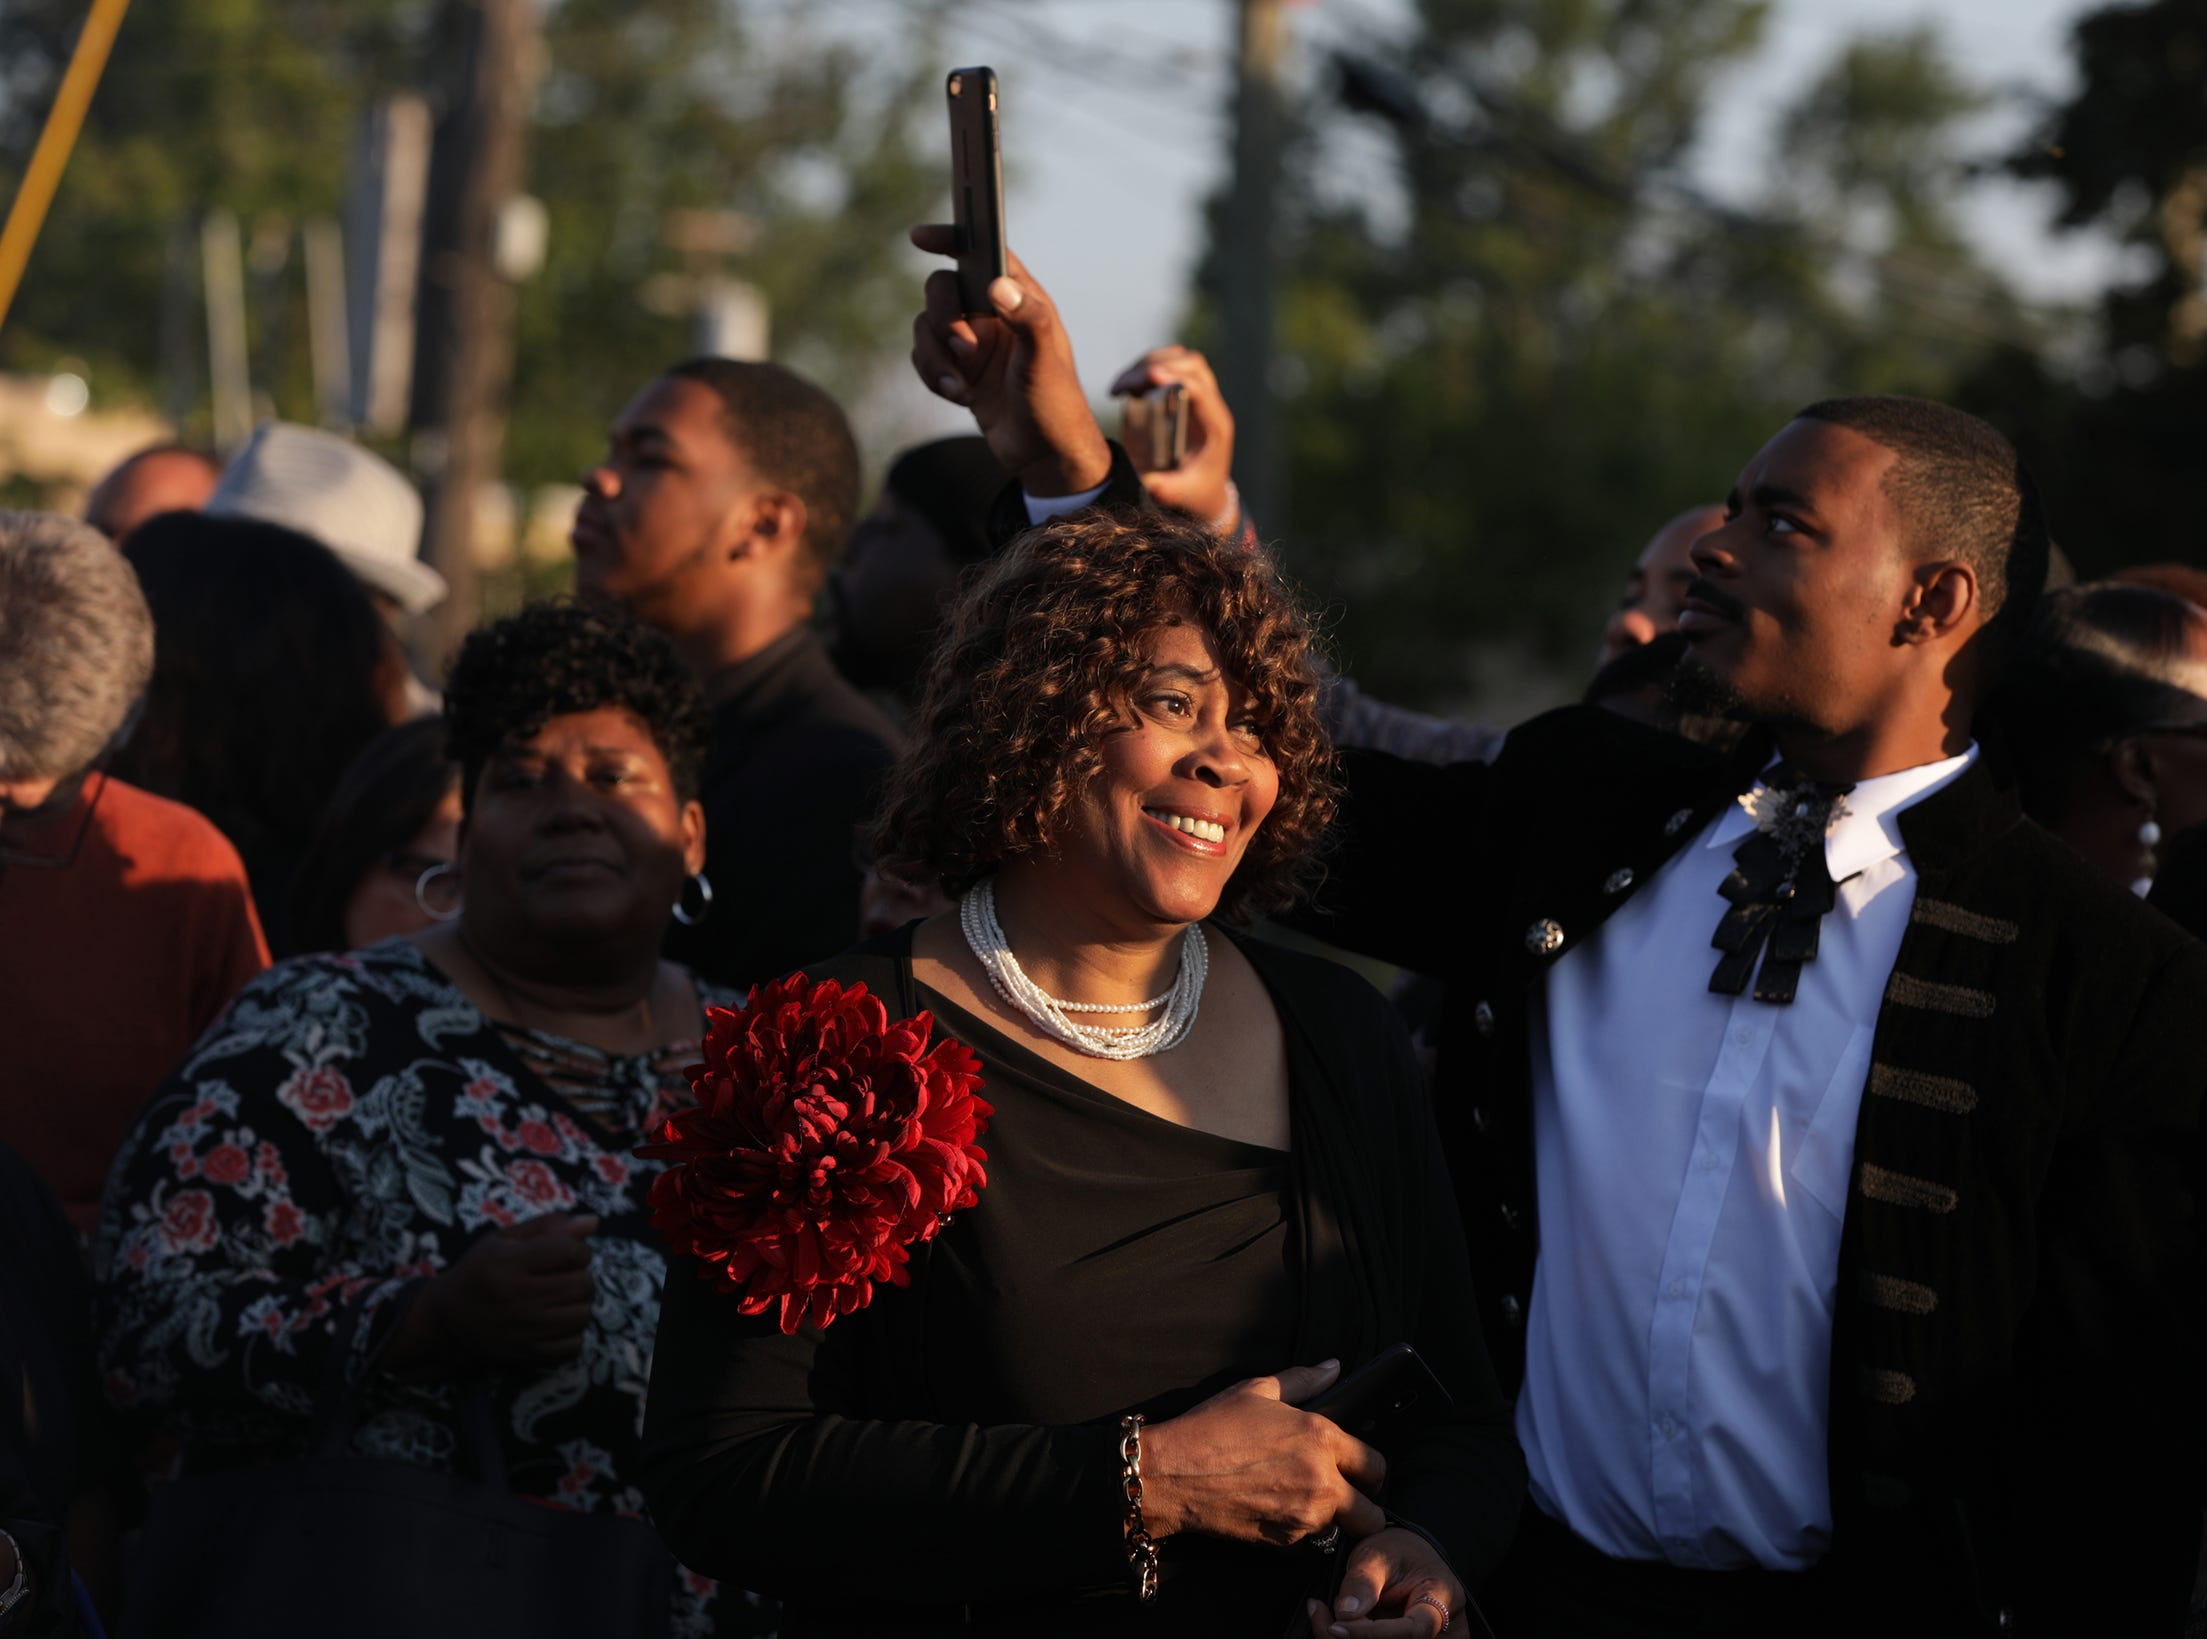 People break into a song as they wait in line for a chance to attend the funeral of Aretha Franklin at Greater Grace Temple on Friday, August 31, 2018.